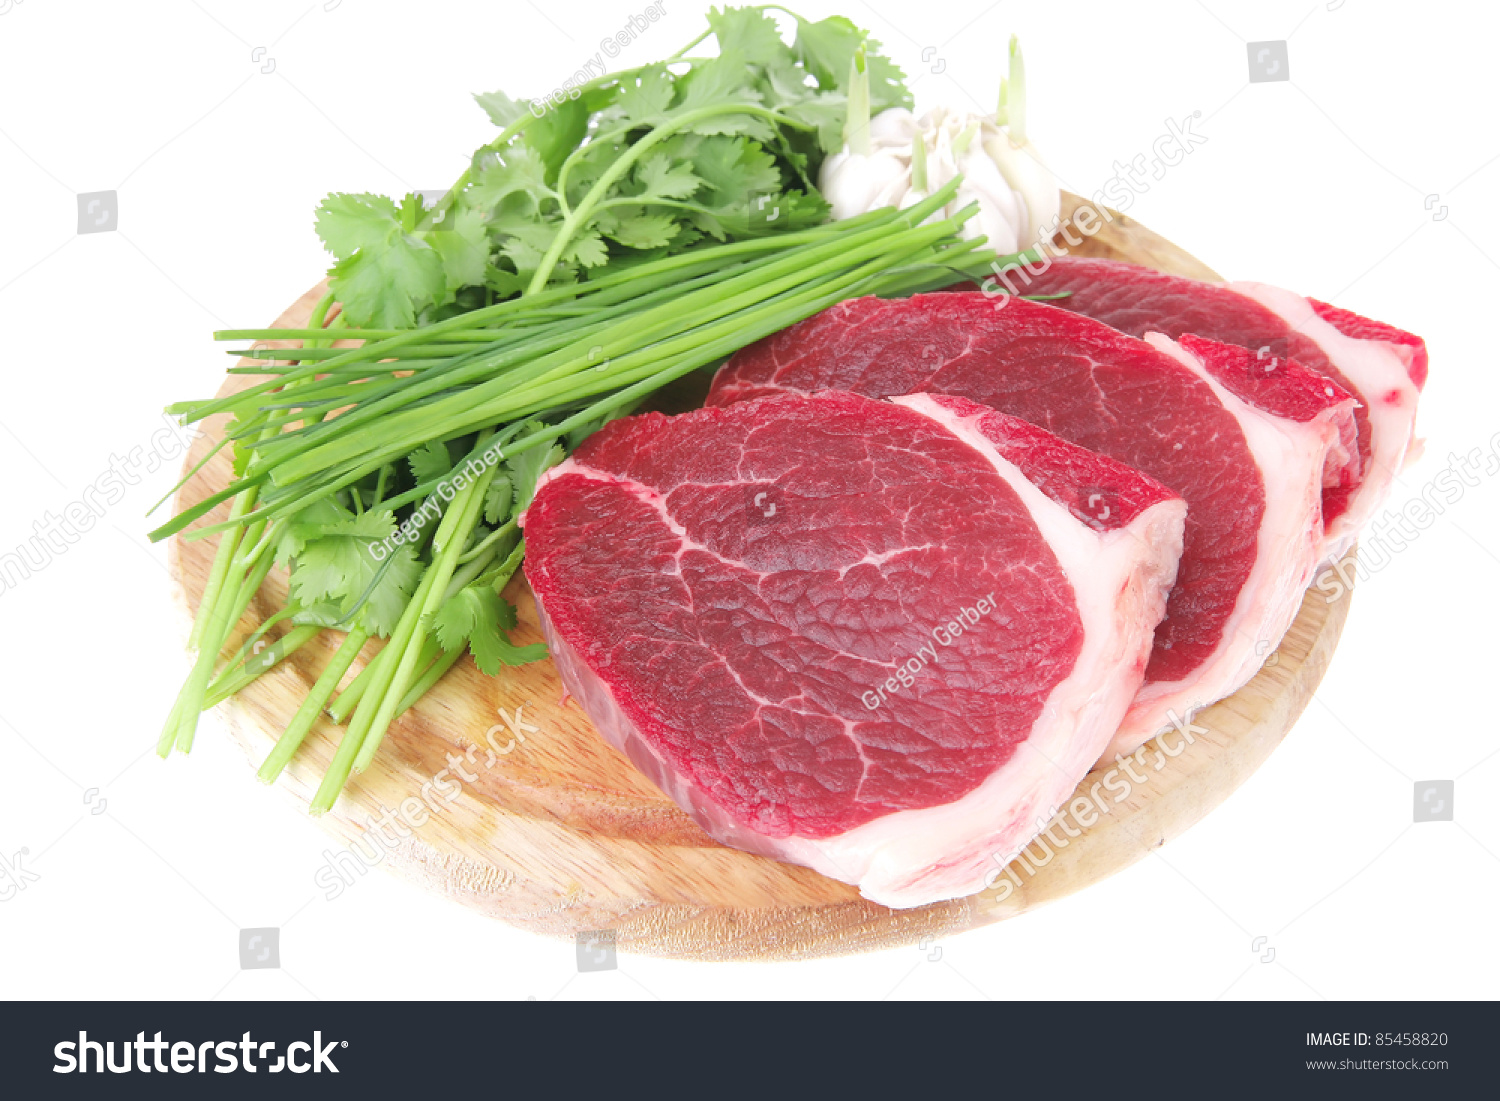 how to cook lamb fillet